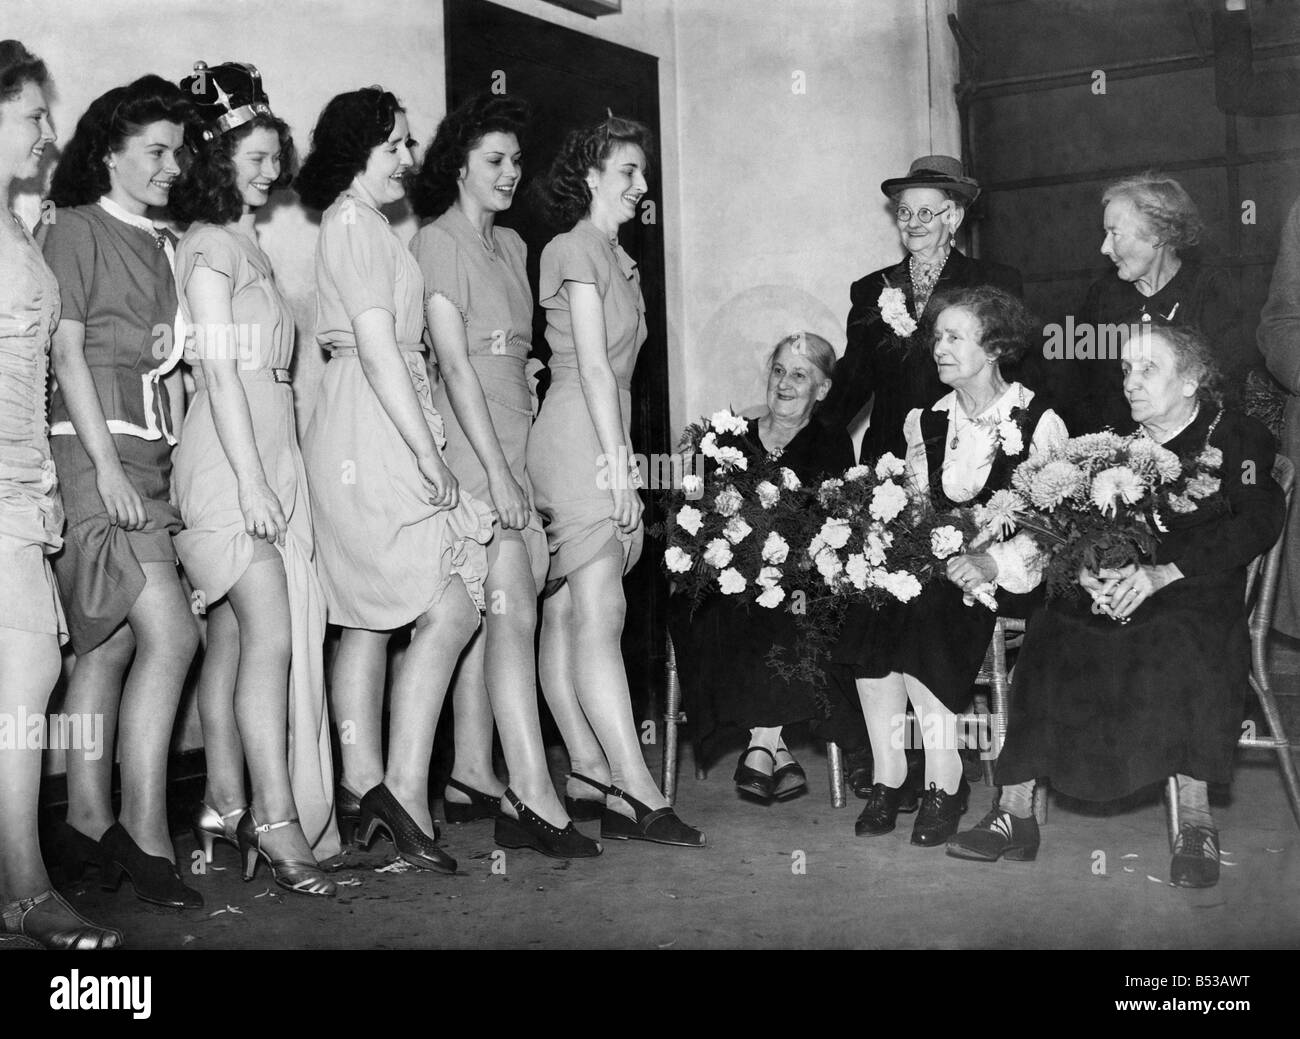 Clothing Women Stockings The Old Ladies Of The Hosiery Trade Met The Young